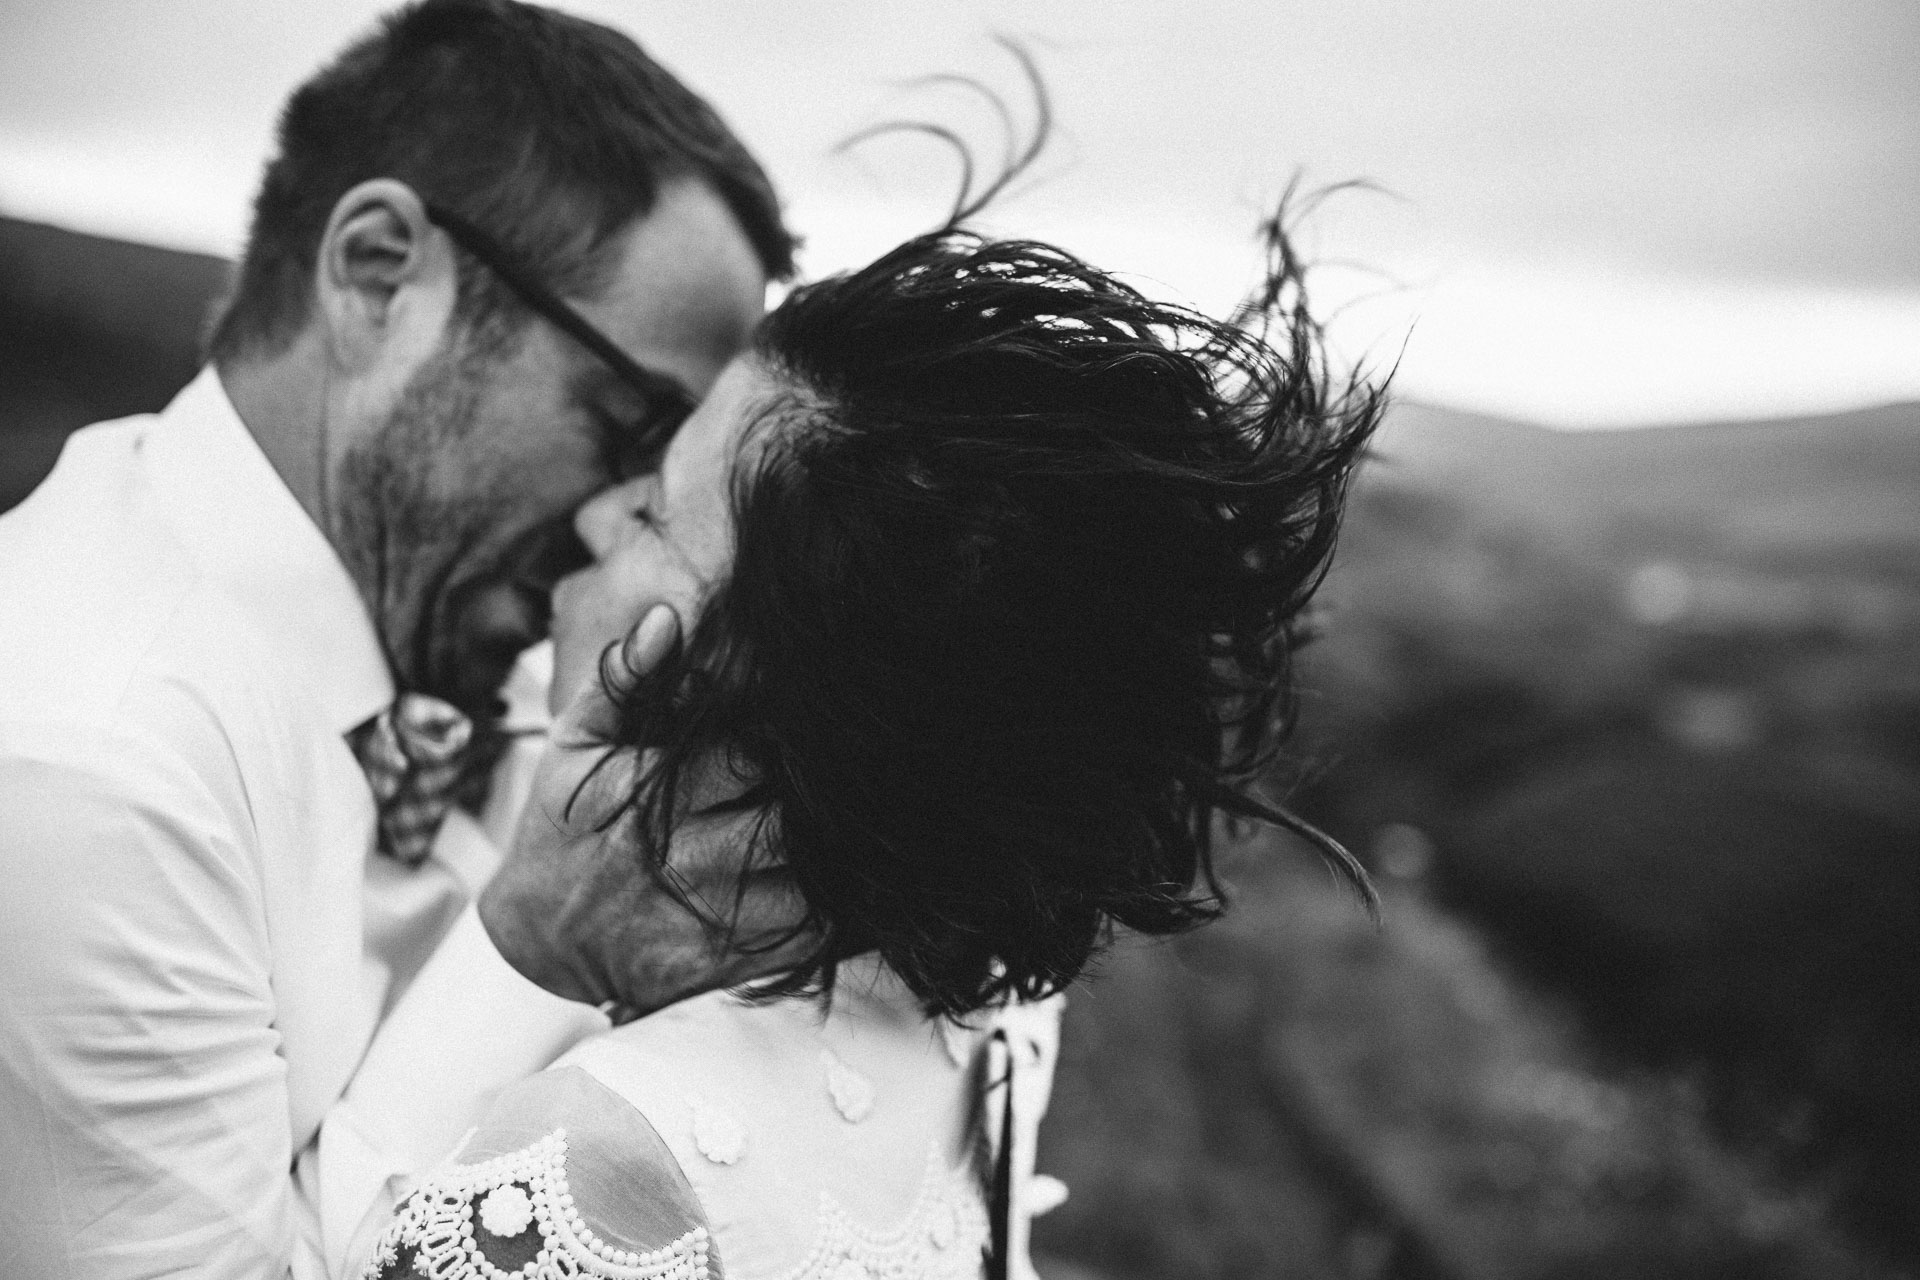 Megan_Matt_Elopement_IntimateWedding_Scotland_IsleOfSkye_JeanLaurentGaudy_096